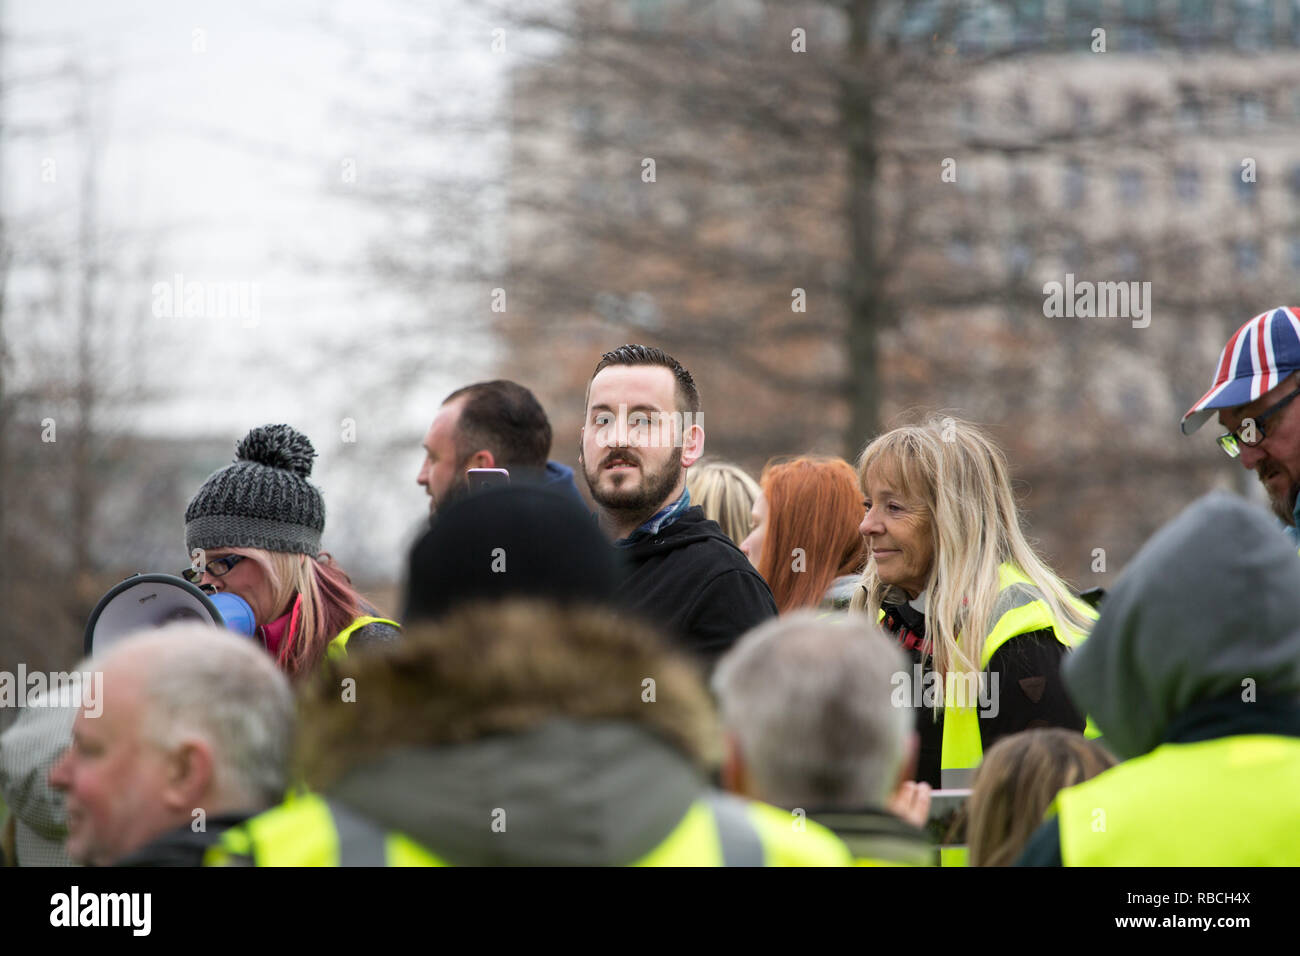 James Goddard at Yellow Vest pro Brexit Demonstartion - Stock Image